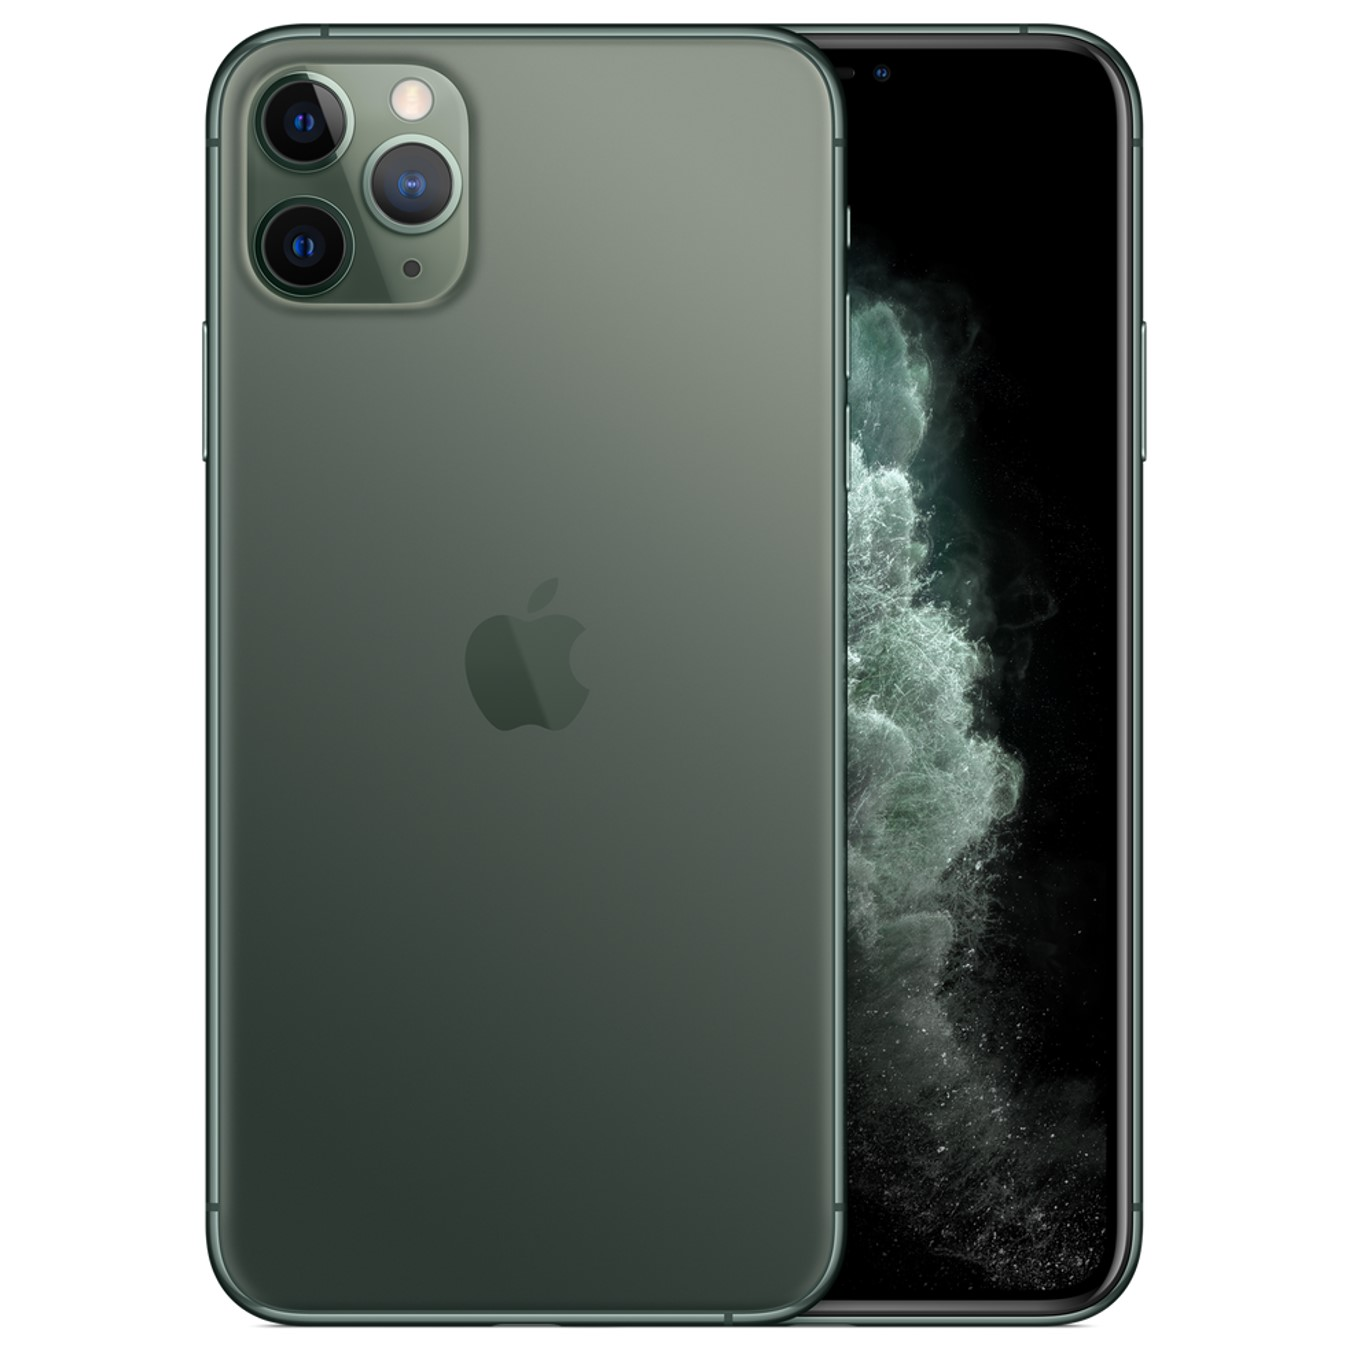 Telefono movil smartphone apple iphone 11 pro max 64gb midnight green - 6.5pulgadas - dual sim - triple camara trasera